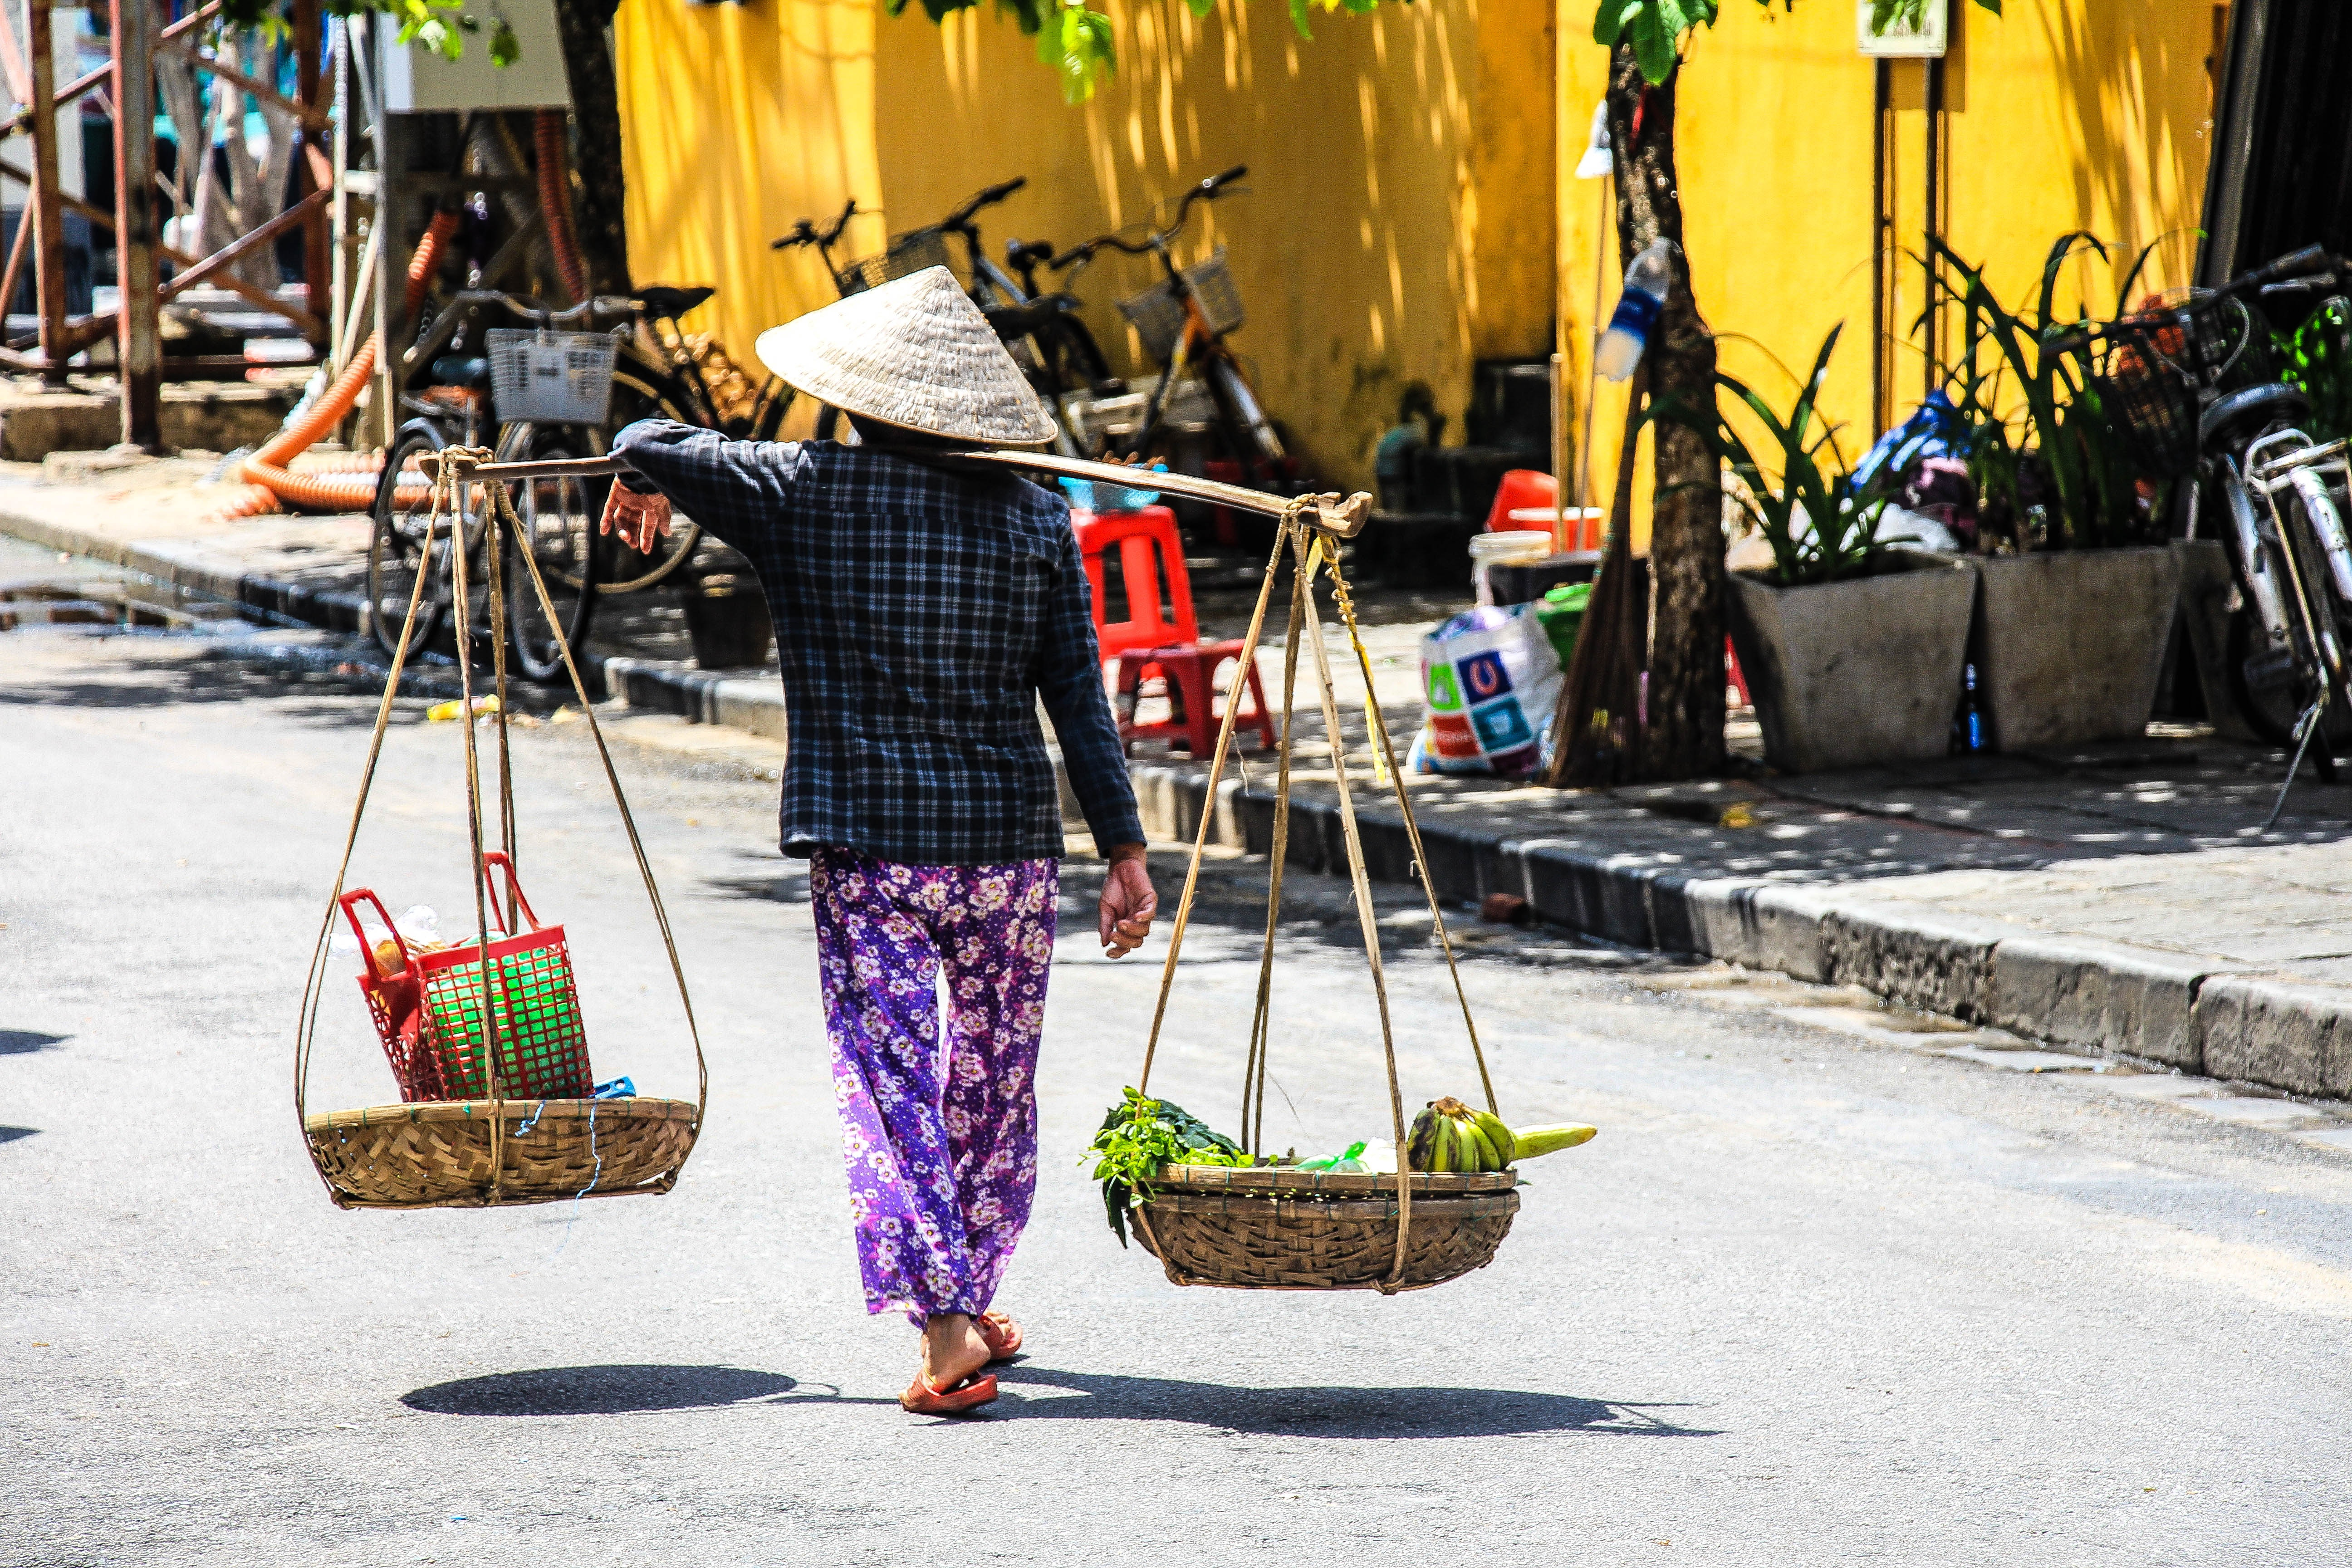 a look into an everyday scene in Vietnam - a woman carries her vegetable produce home in balance